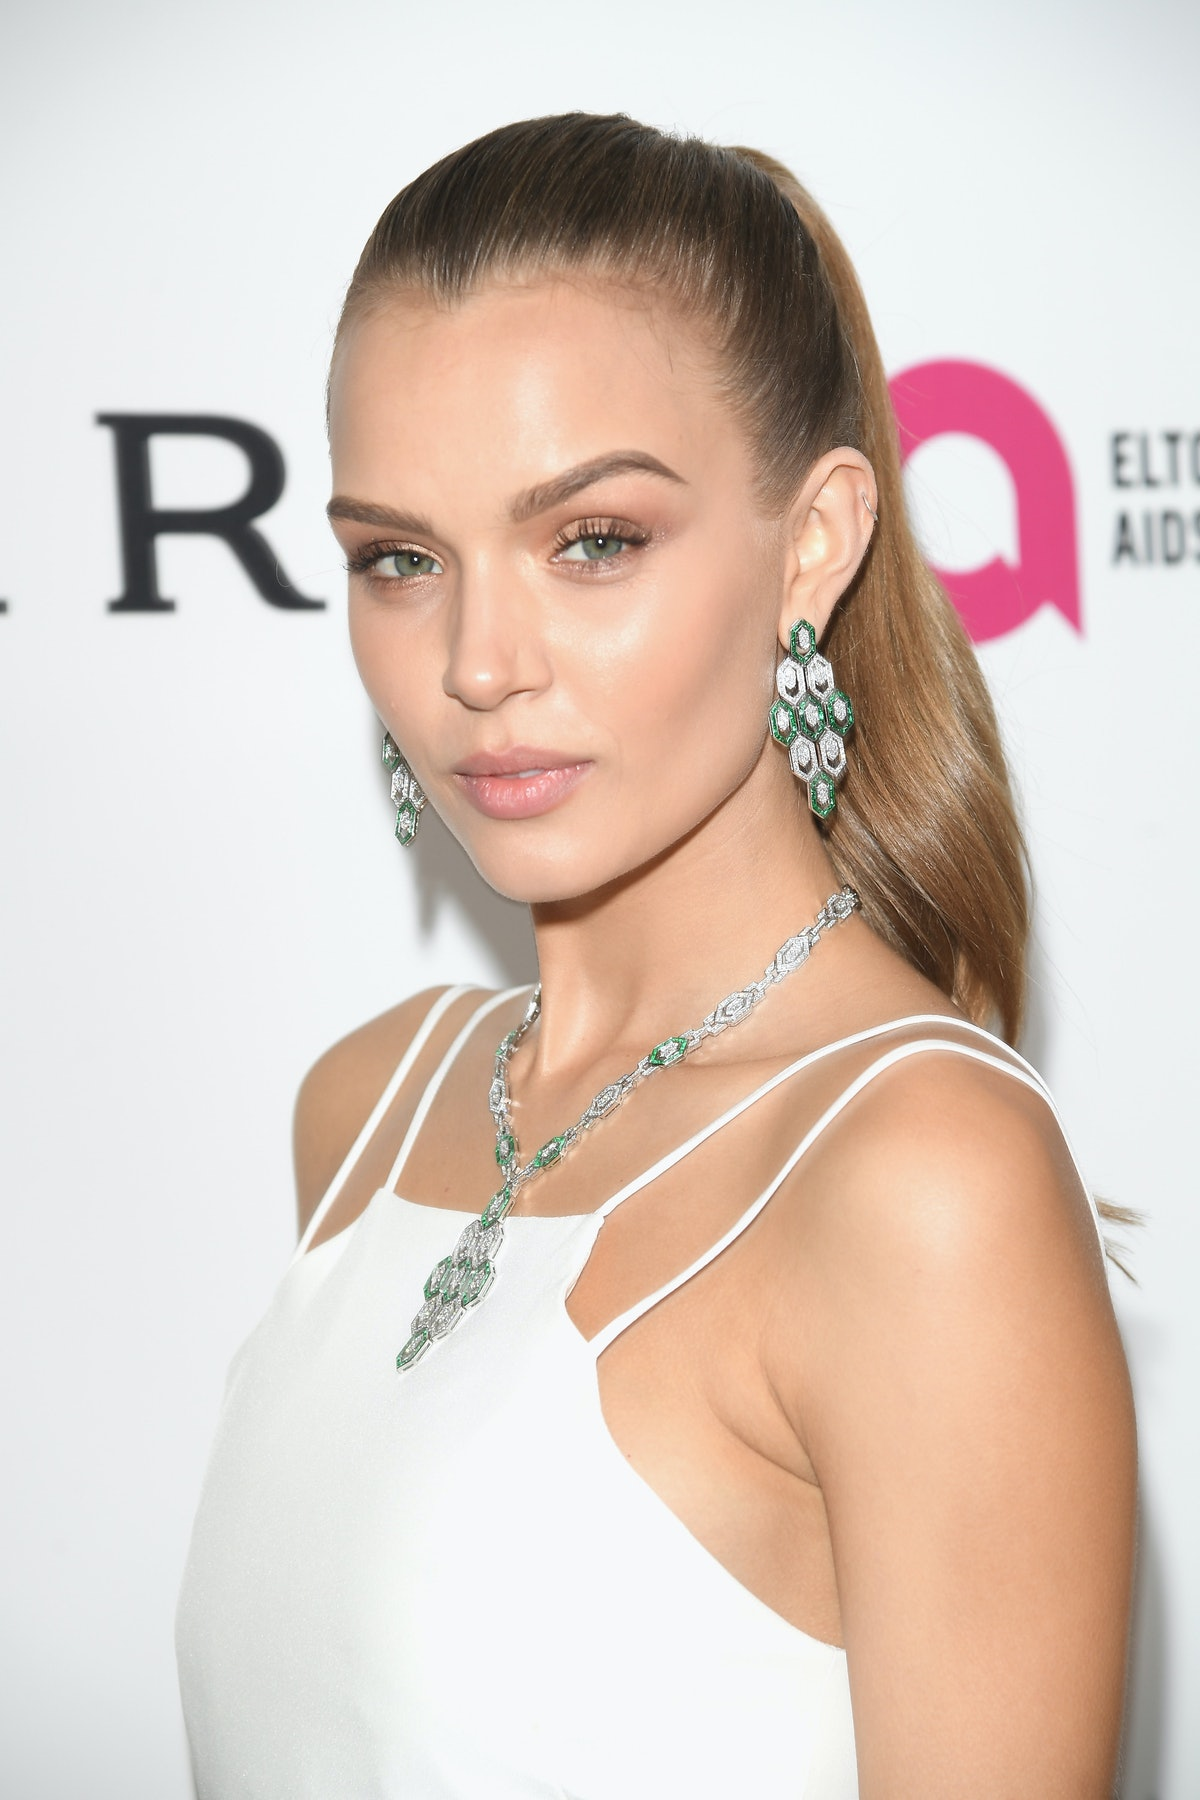 Bulgari At 25th Annual Elton John AIDS Foundation's Academy Awards Viewing Party